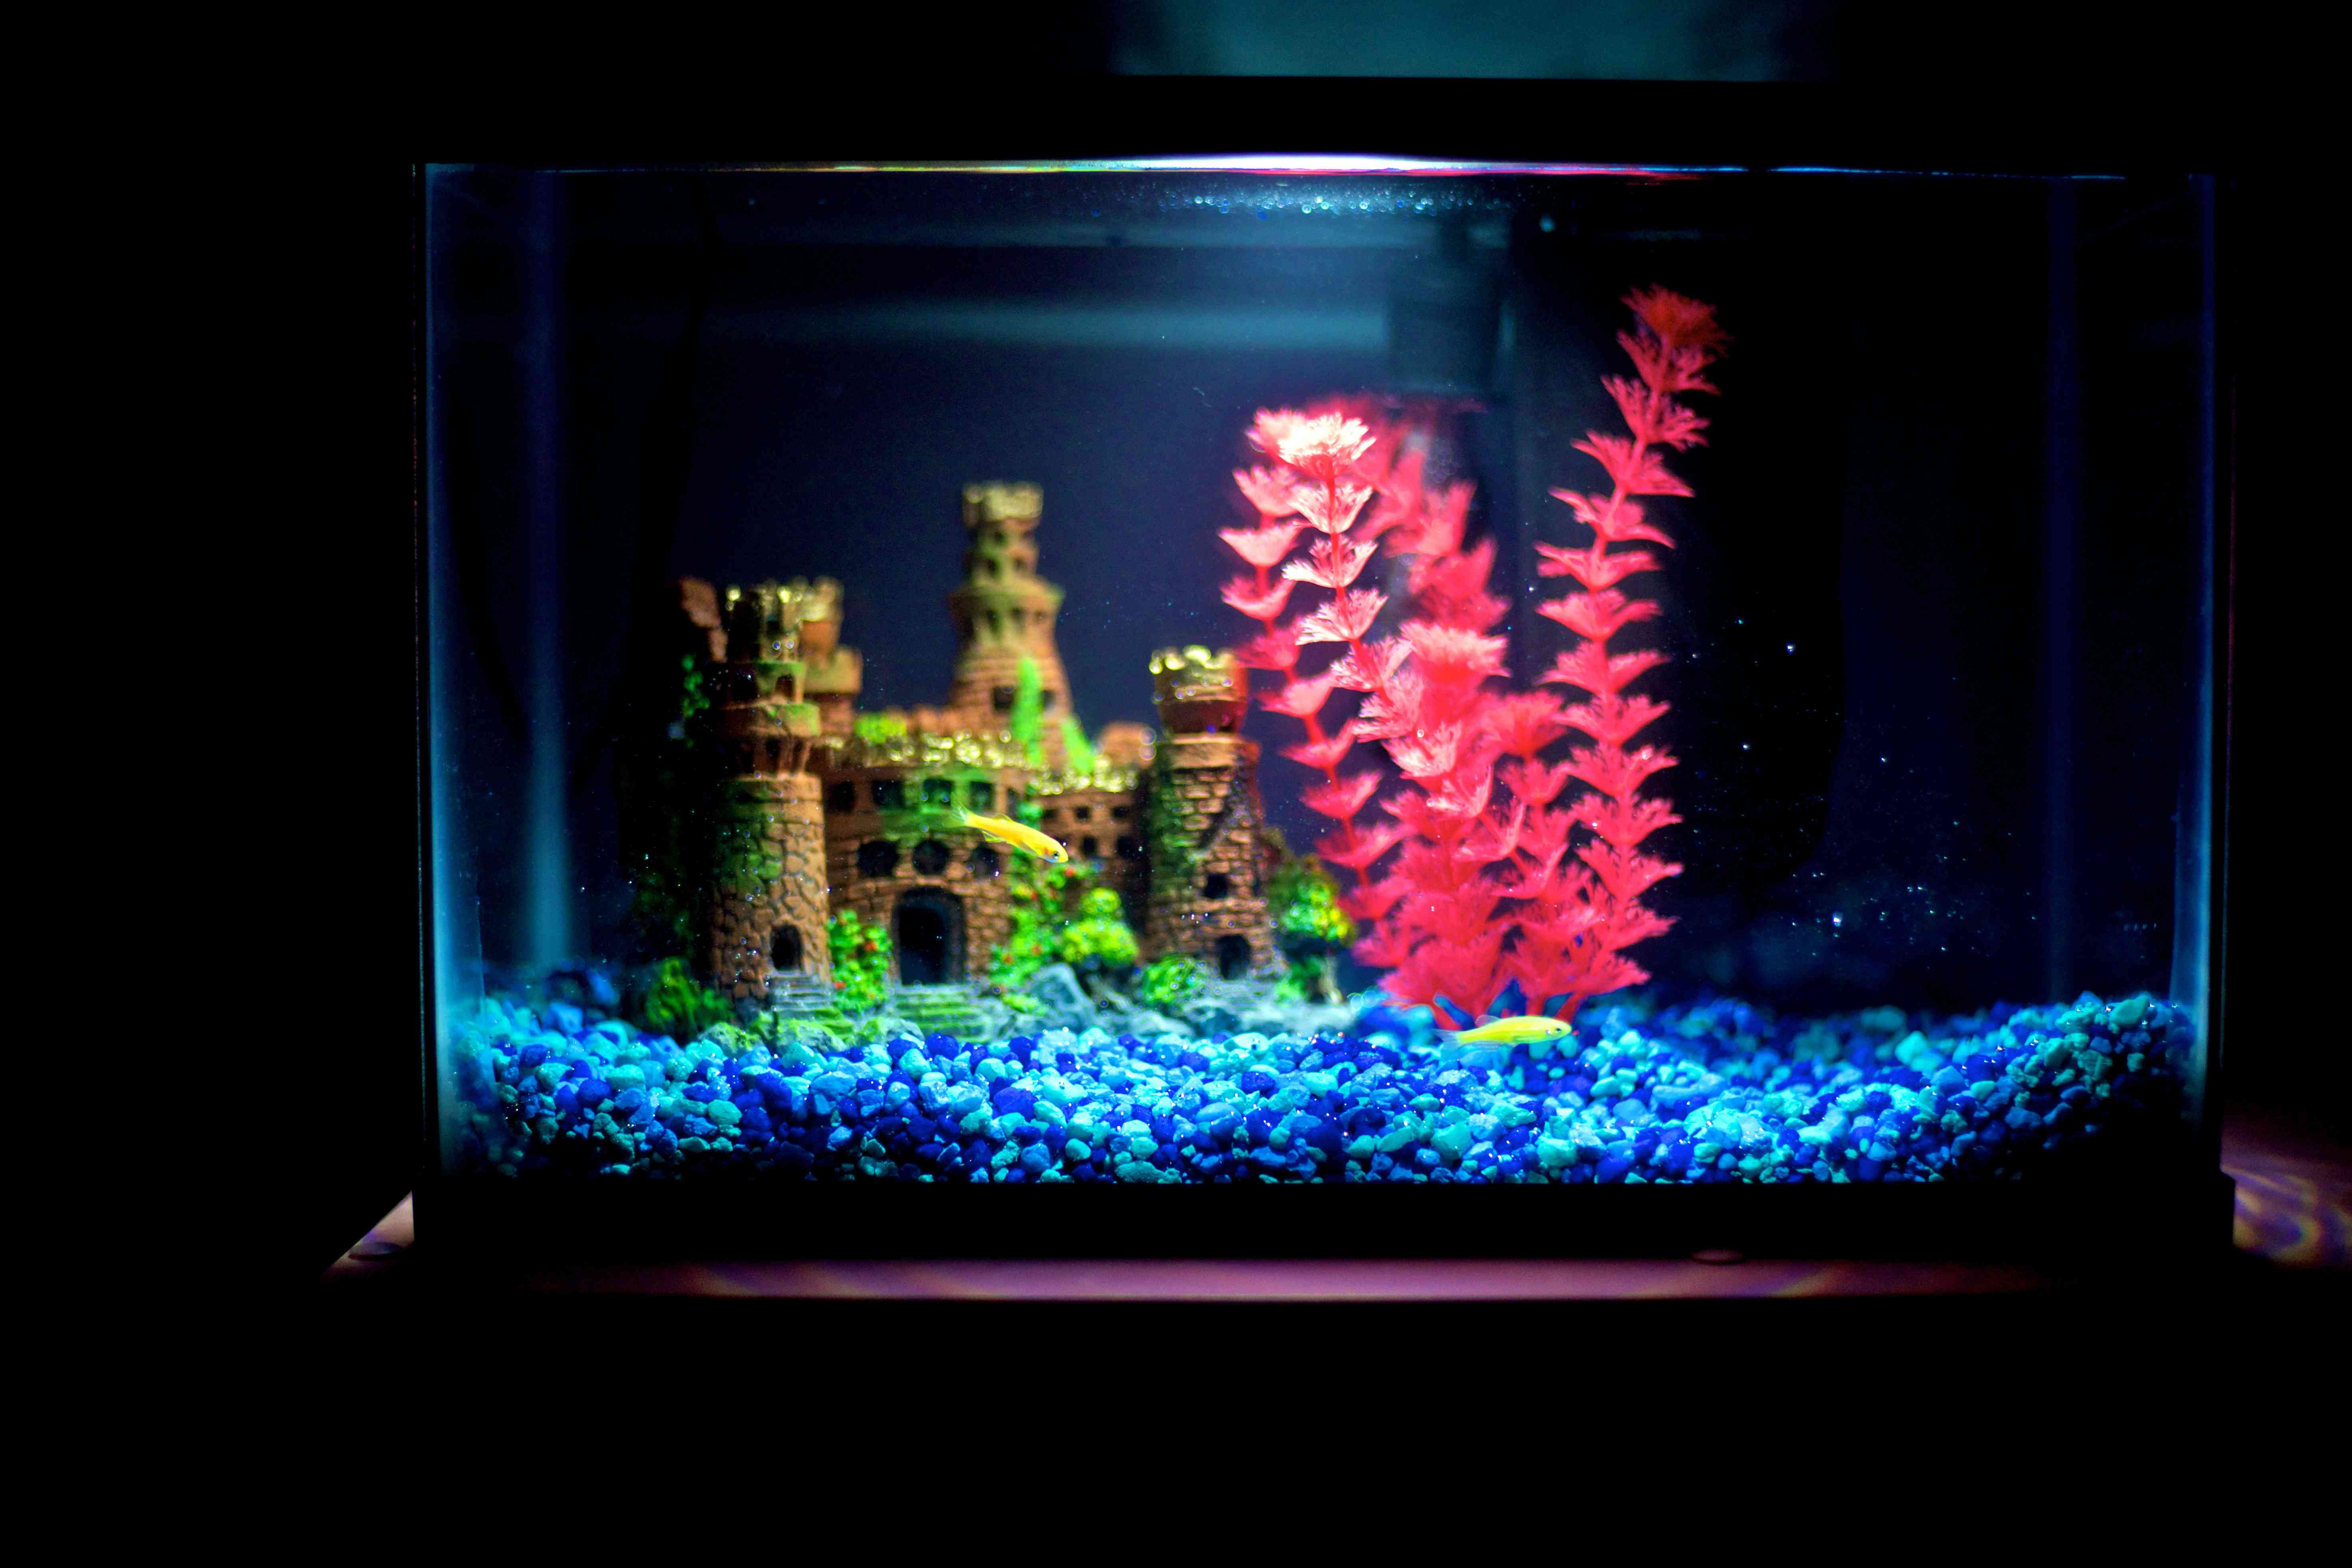 Two yellow danios swimming in a brightly decorated aquarium lit by a fluorescent bulb